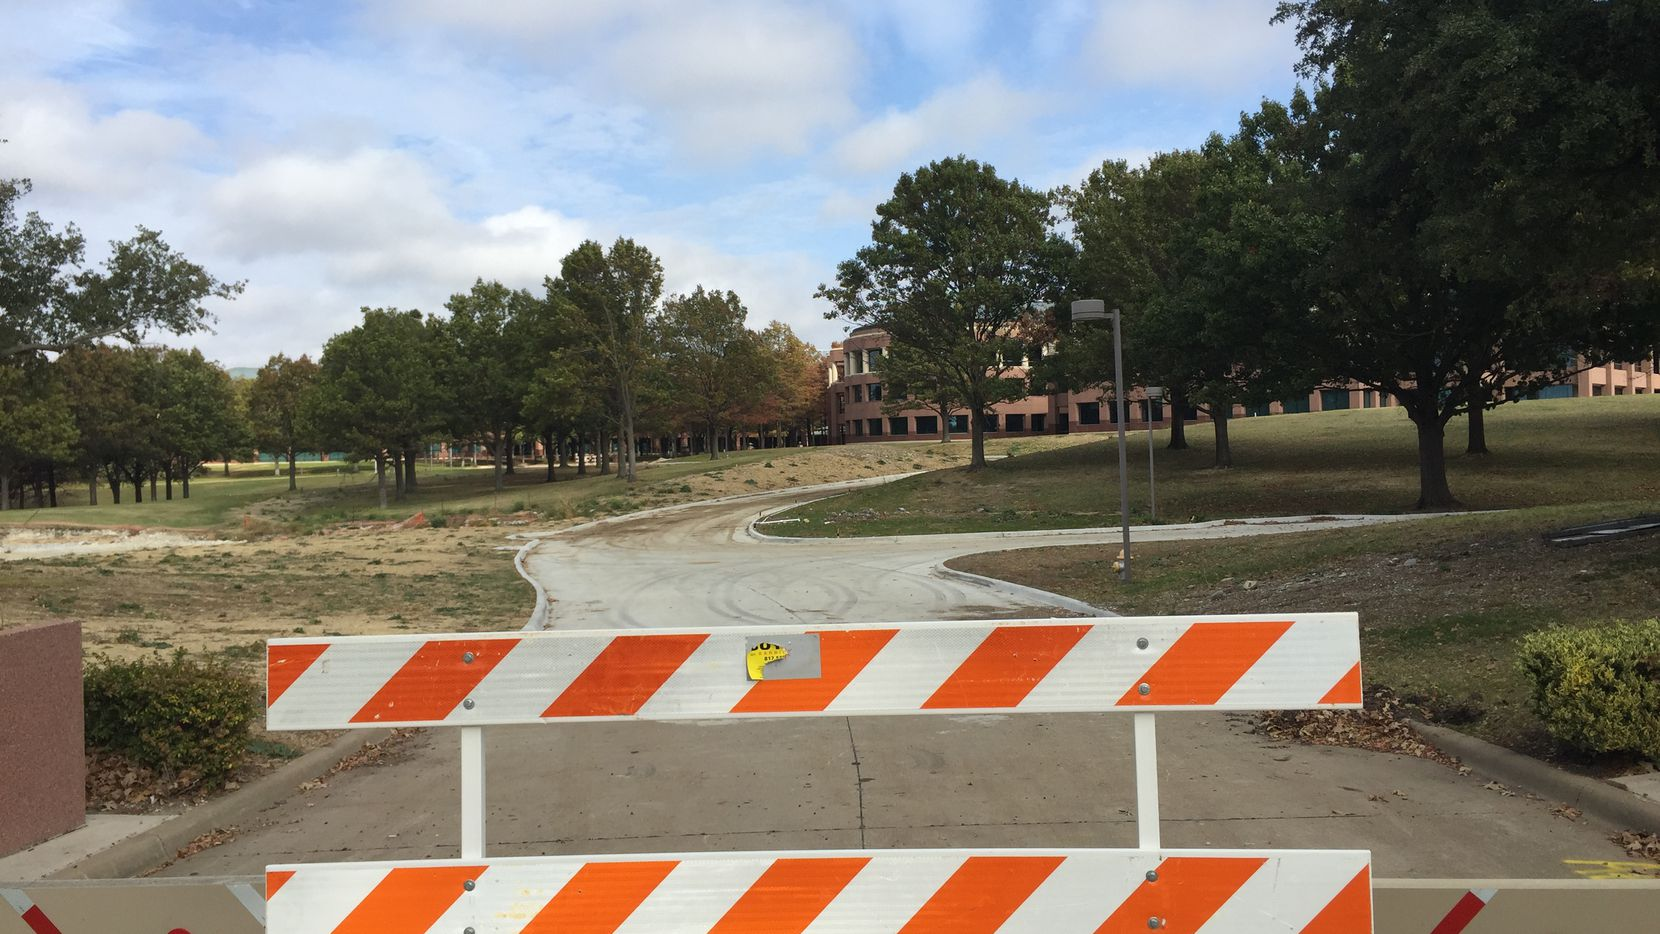 A barricade is in the long driveway to what was the main entrance of J.C. Penney's headquarters in Plano.